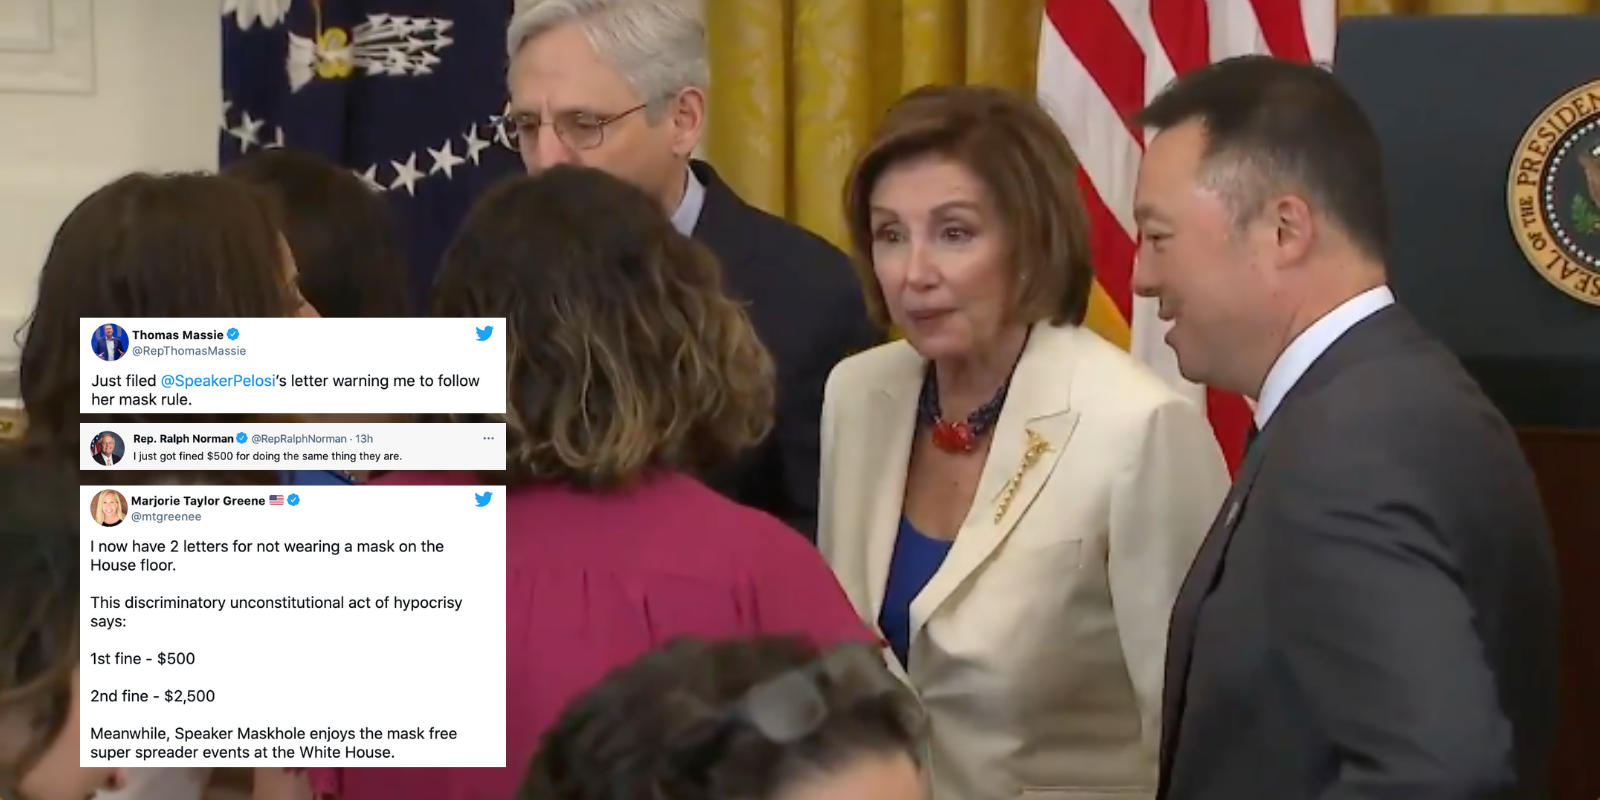 WATCH: House Speaker Pelosi schmoozes while unmasked with Democrats after fining GOP lawmakers for not masking